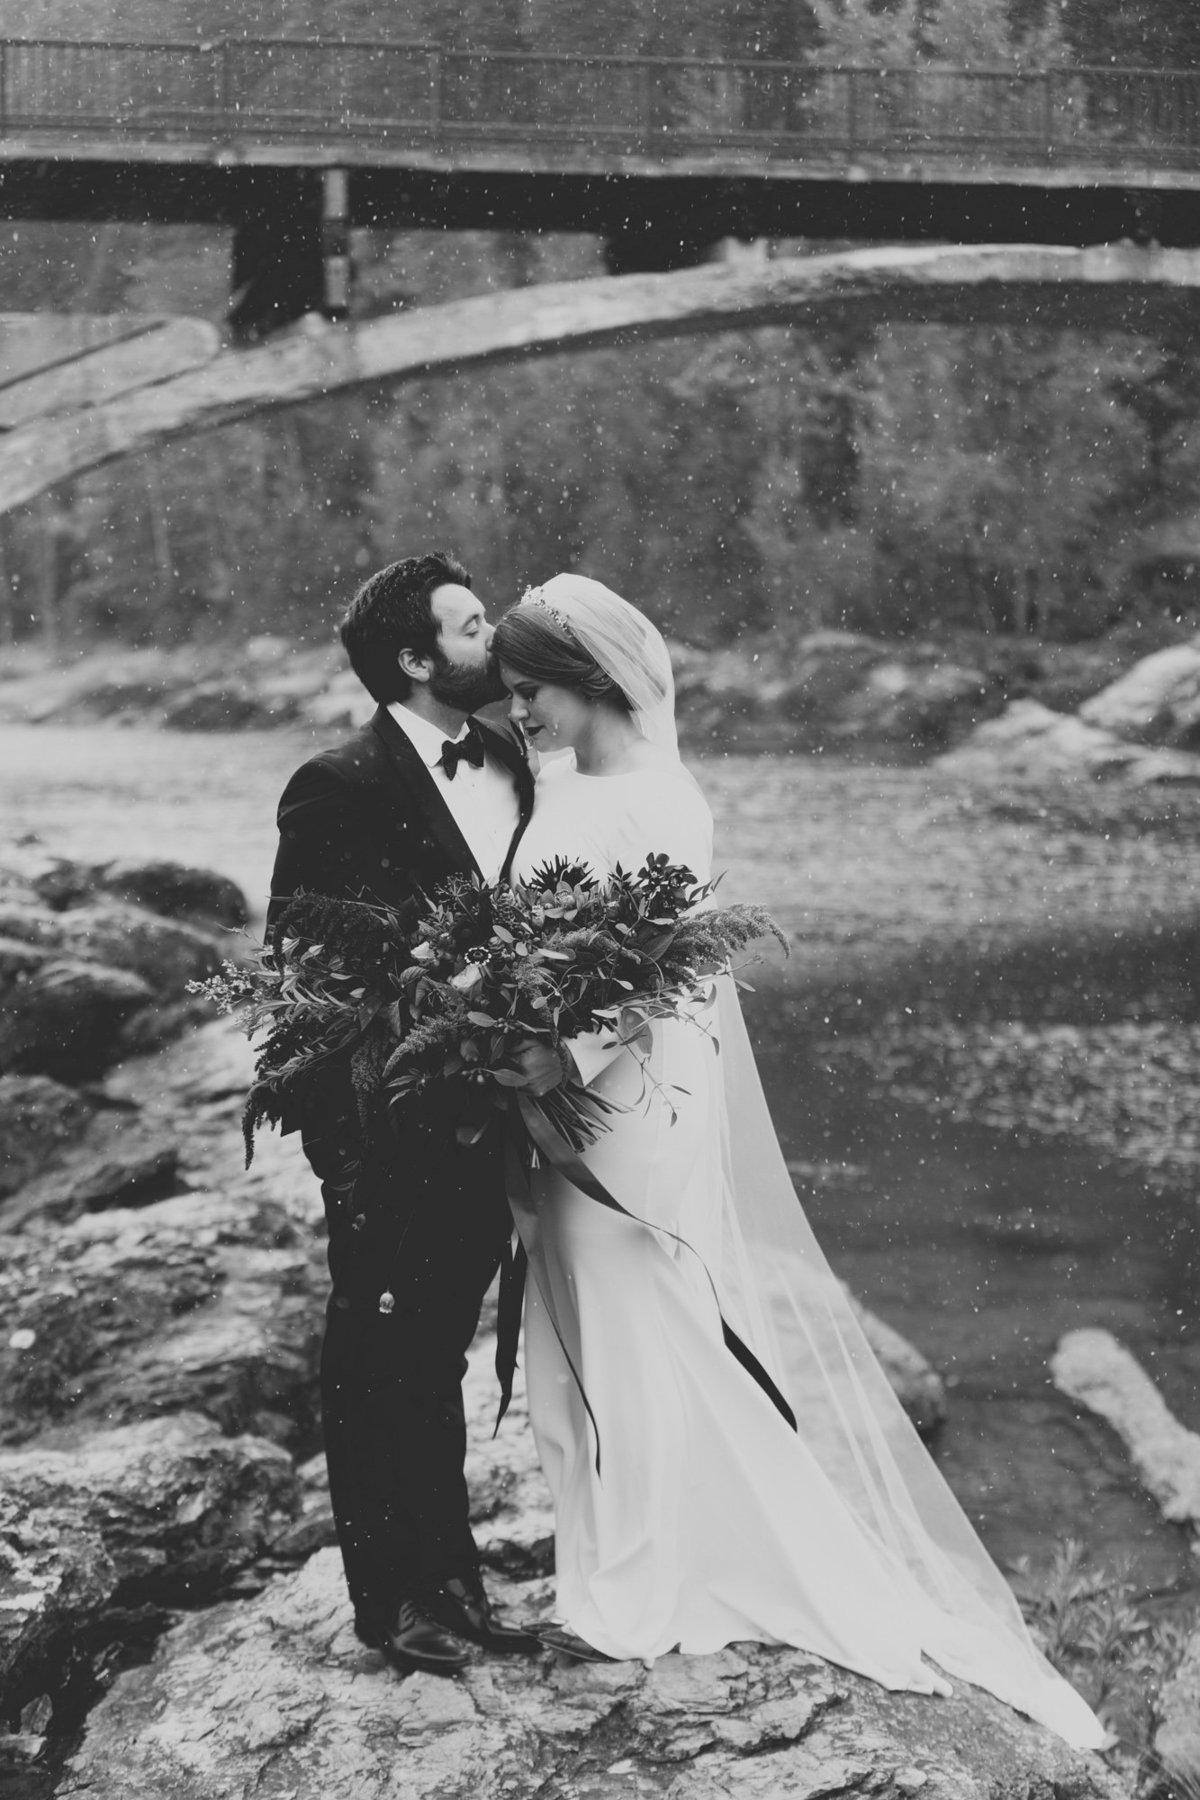 Jennifer_Mooney_Photography_Abbey_Stephen_Fall_Winter_Glacier_Park_Elopement-51